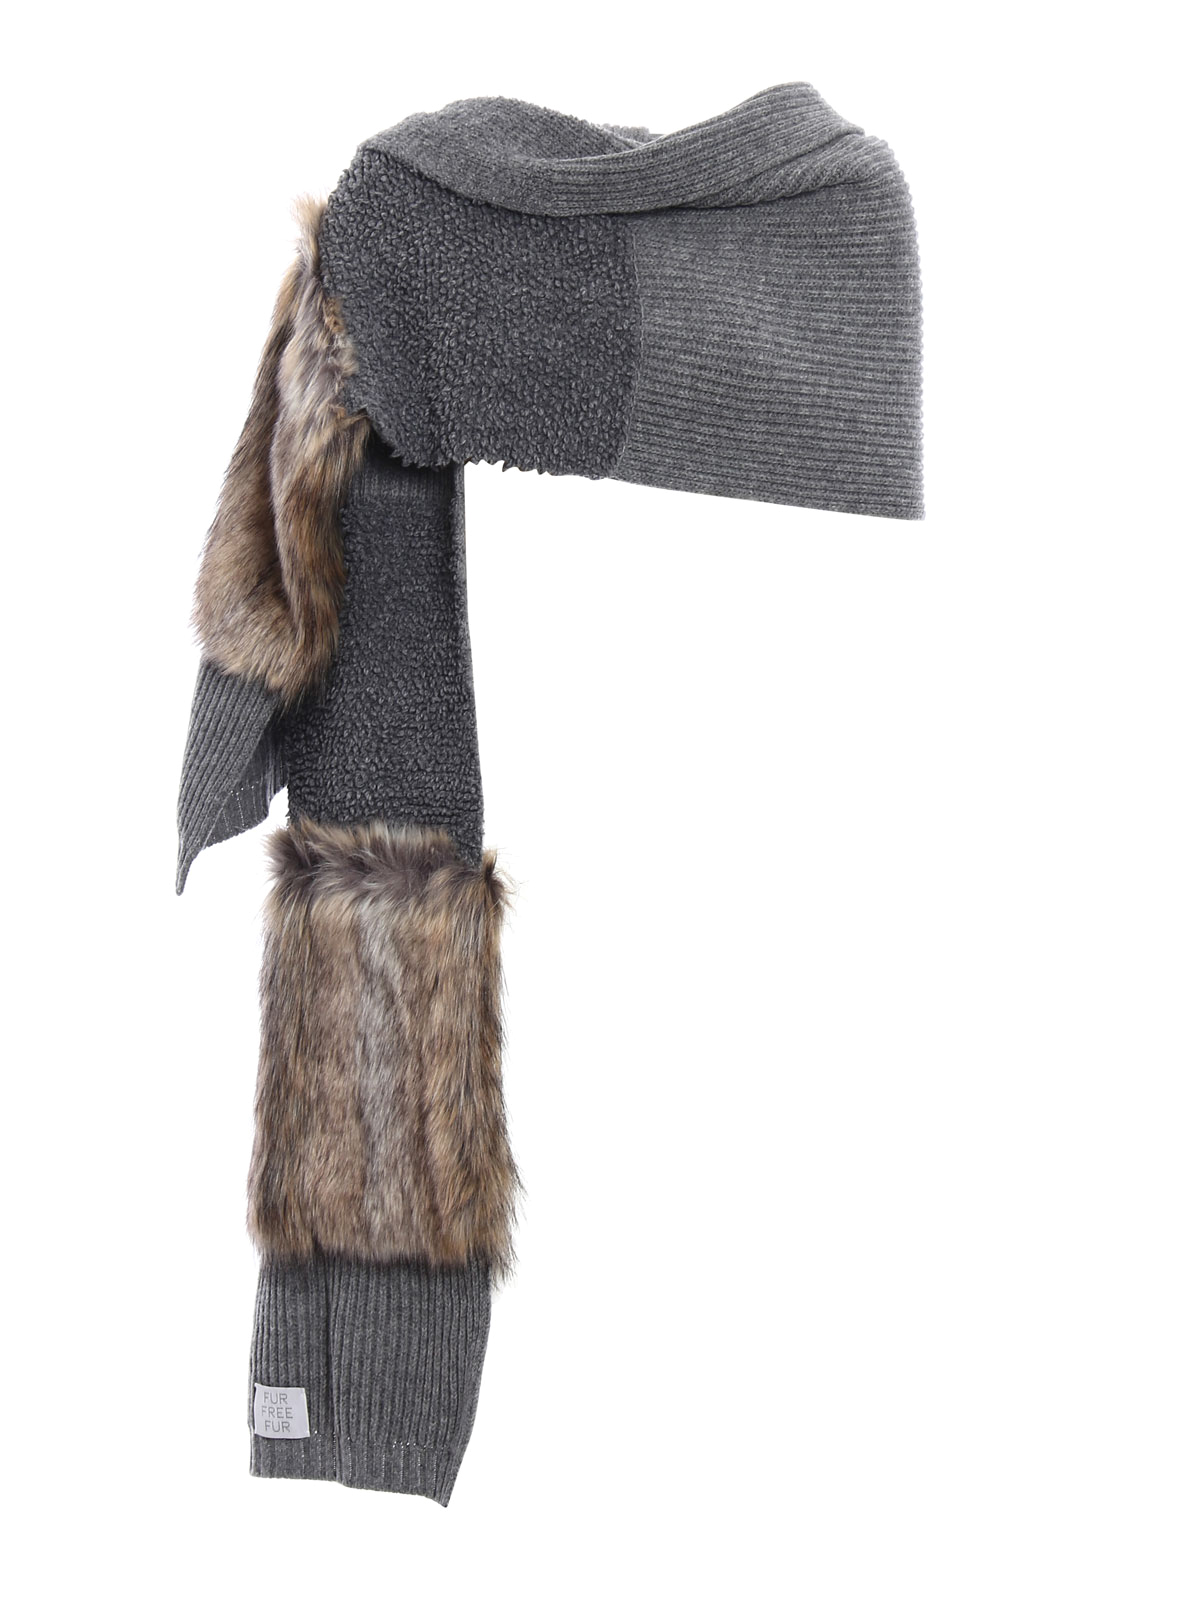 comprare on line a8e87 11878 Stella Mccartney - Sciarpa in lana Fur Free Fur - sciarpe e ...